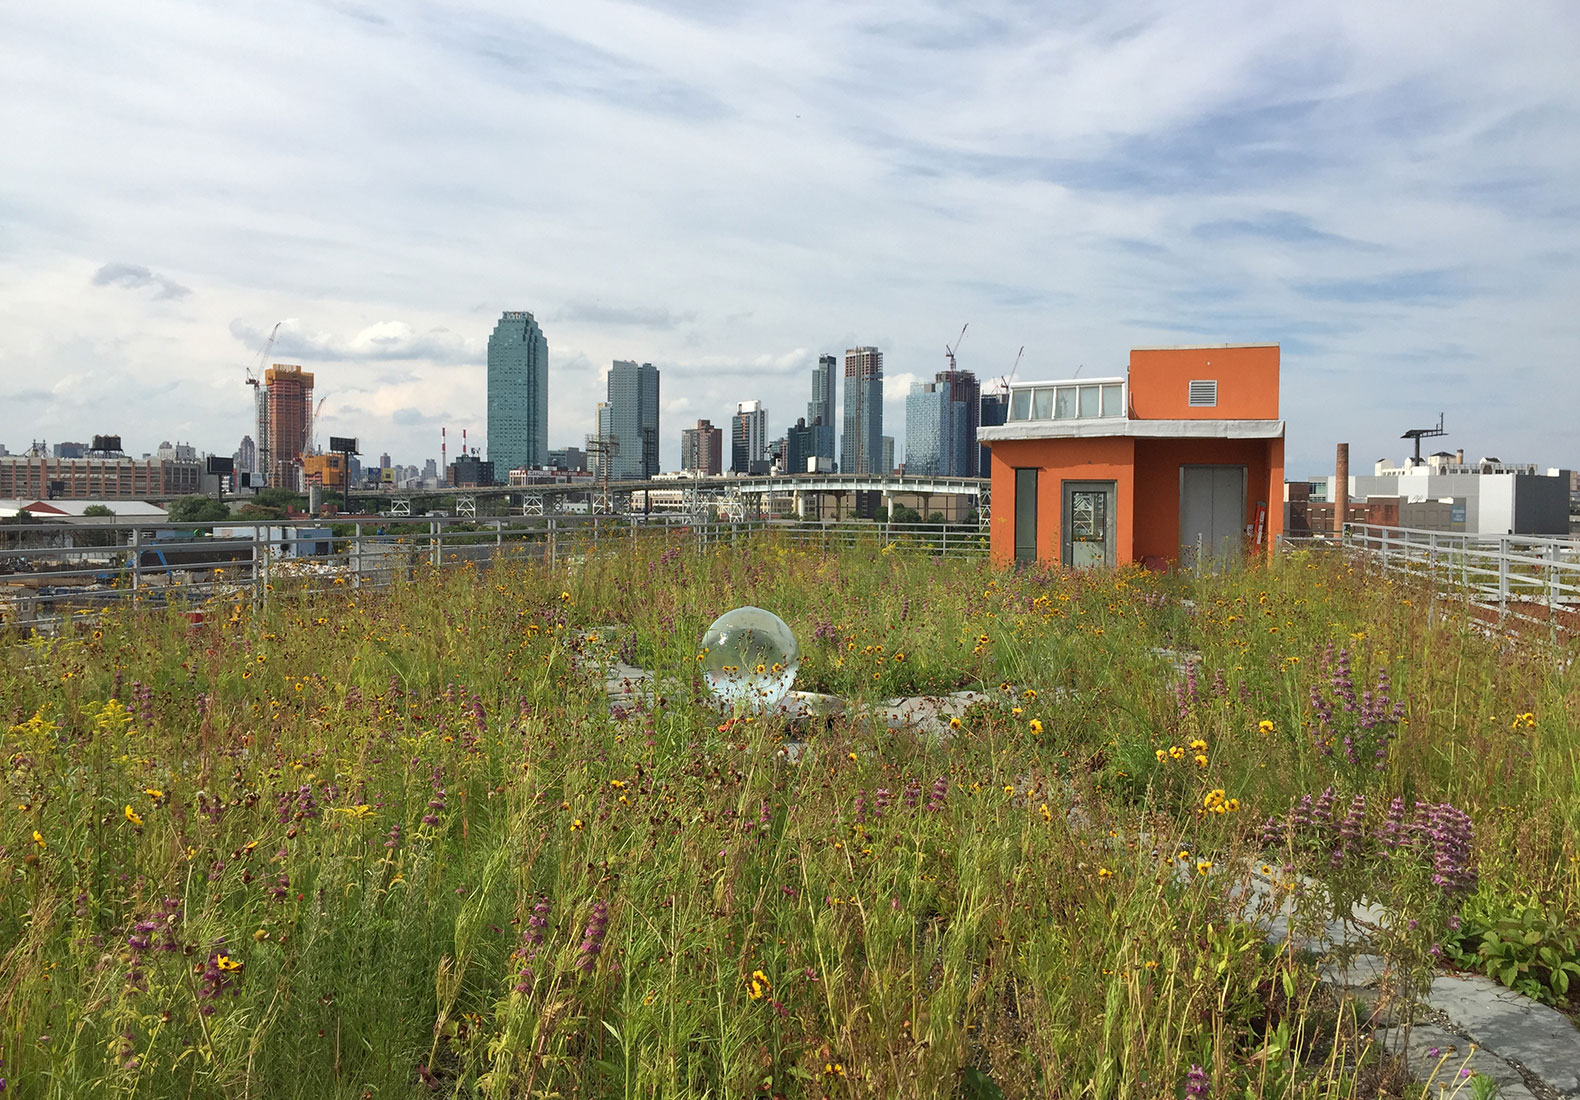 A Rooftop Urban Oasis Springs To Life In A Polluted NYC Neighborhood